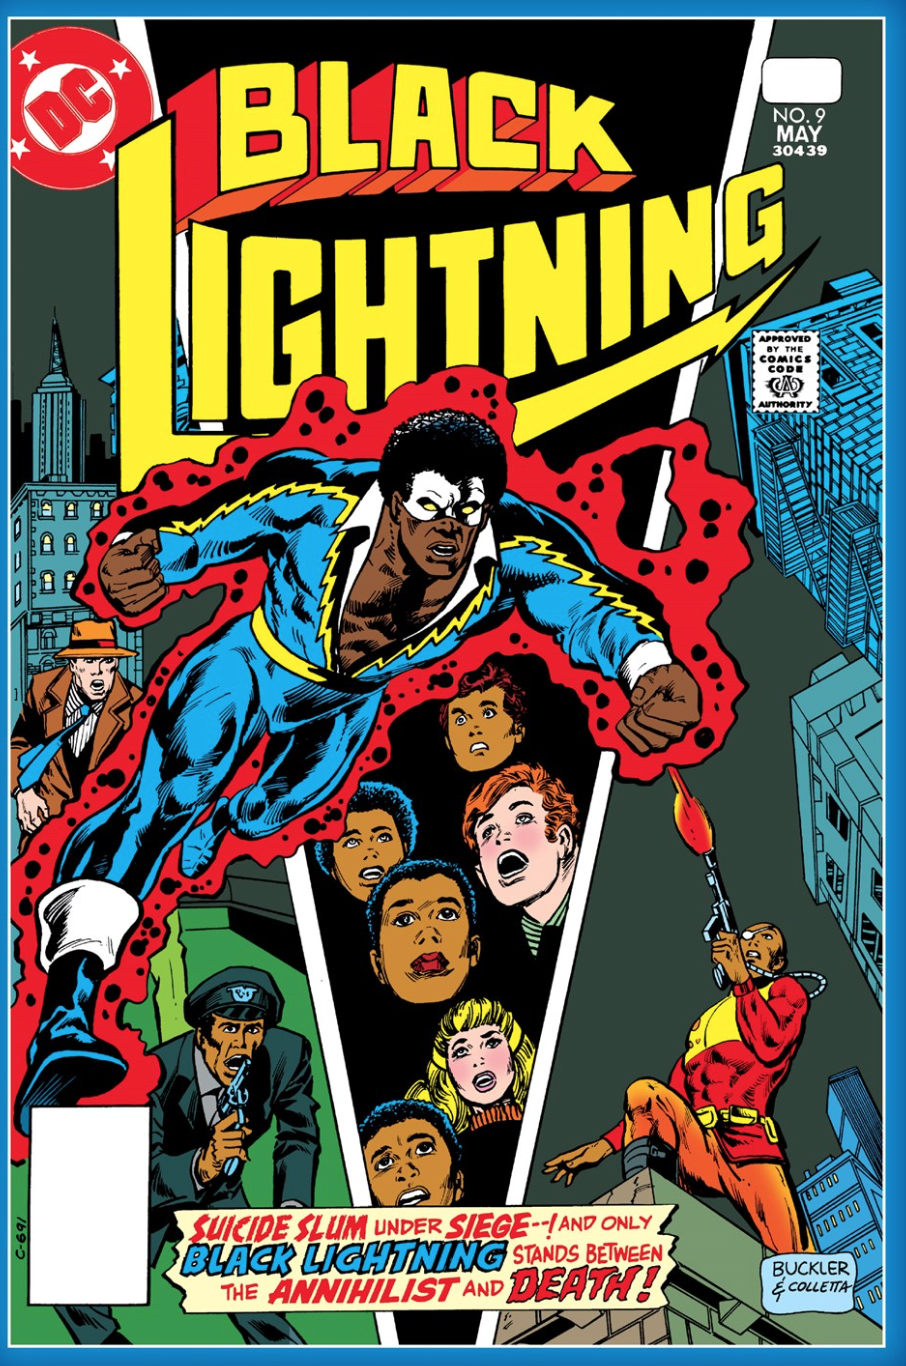 Black Lightning Cover.png